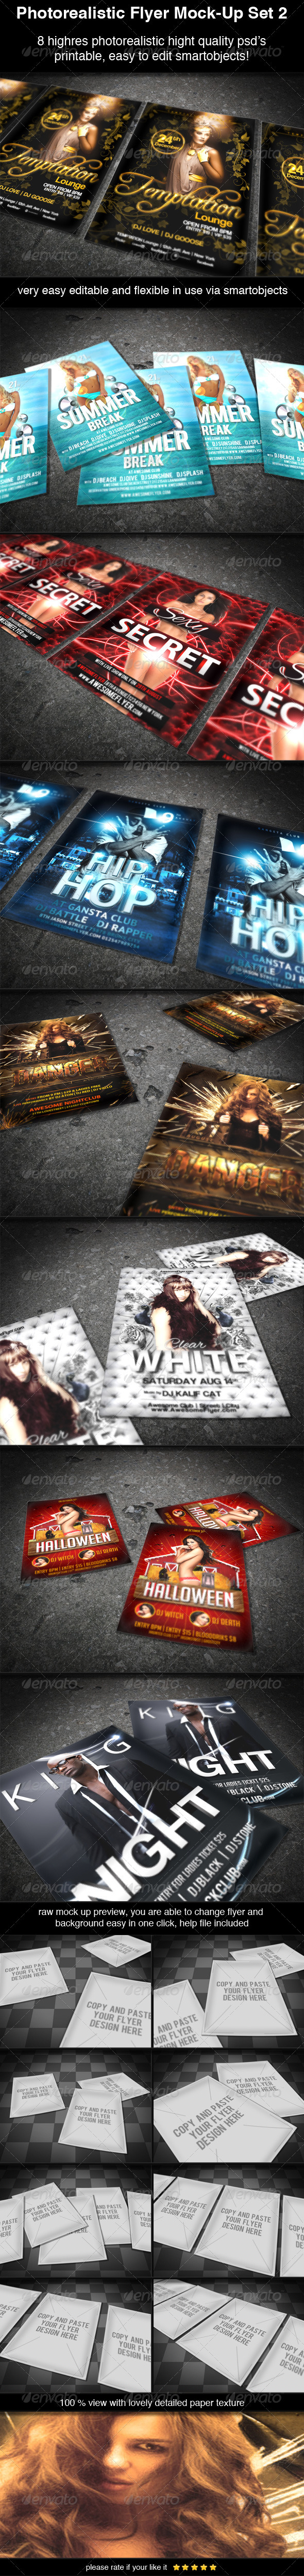 Photorealistic Flyer Mock-Up Set 2 - Flyers Print